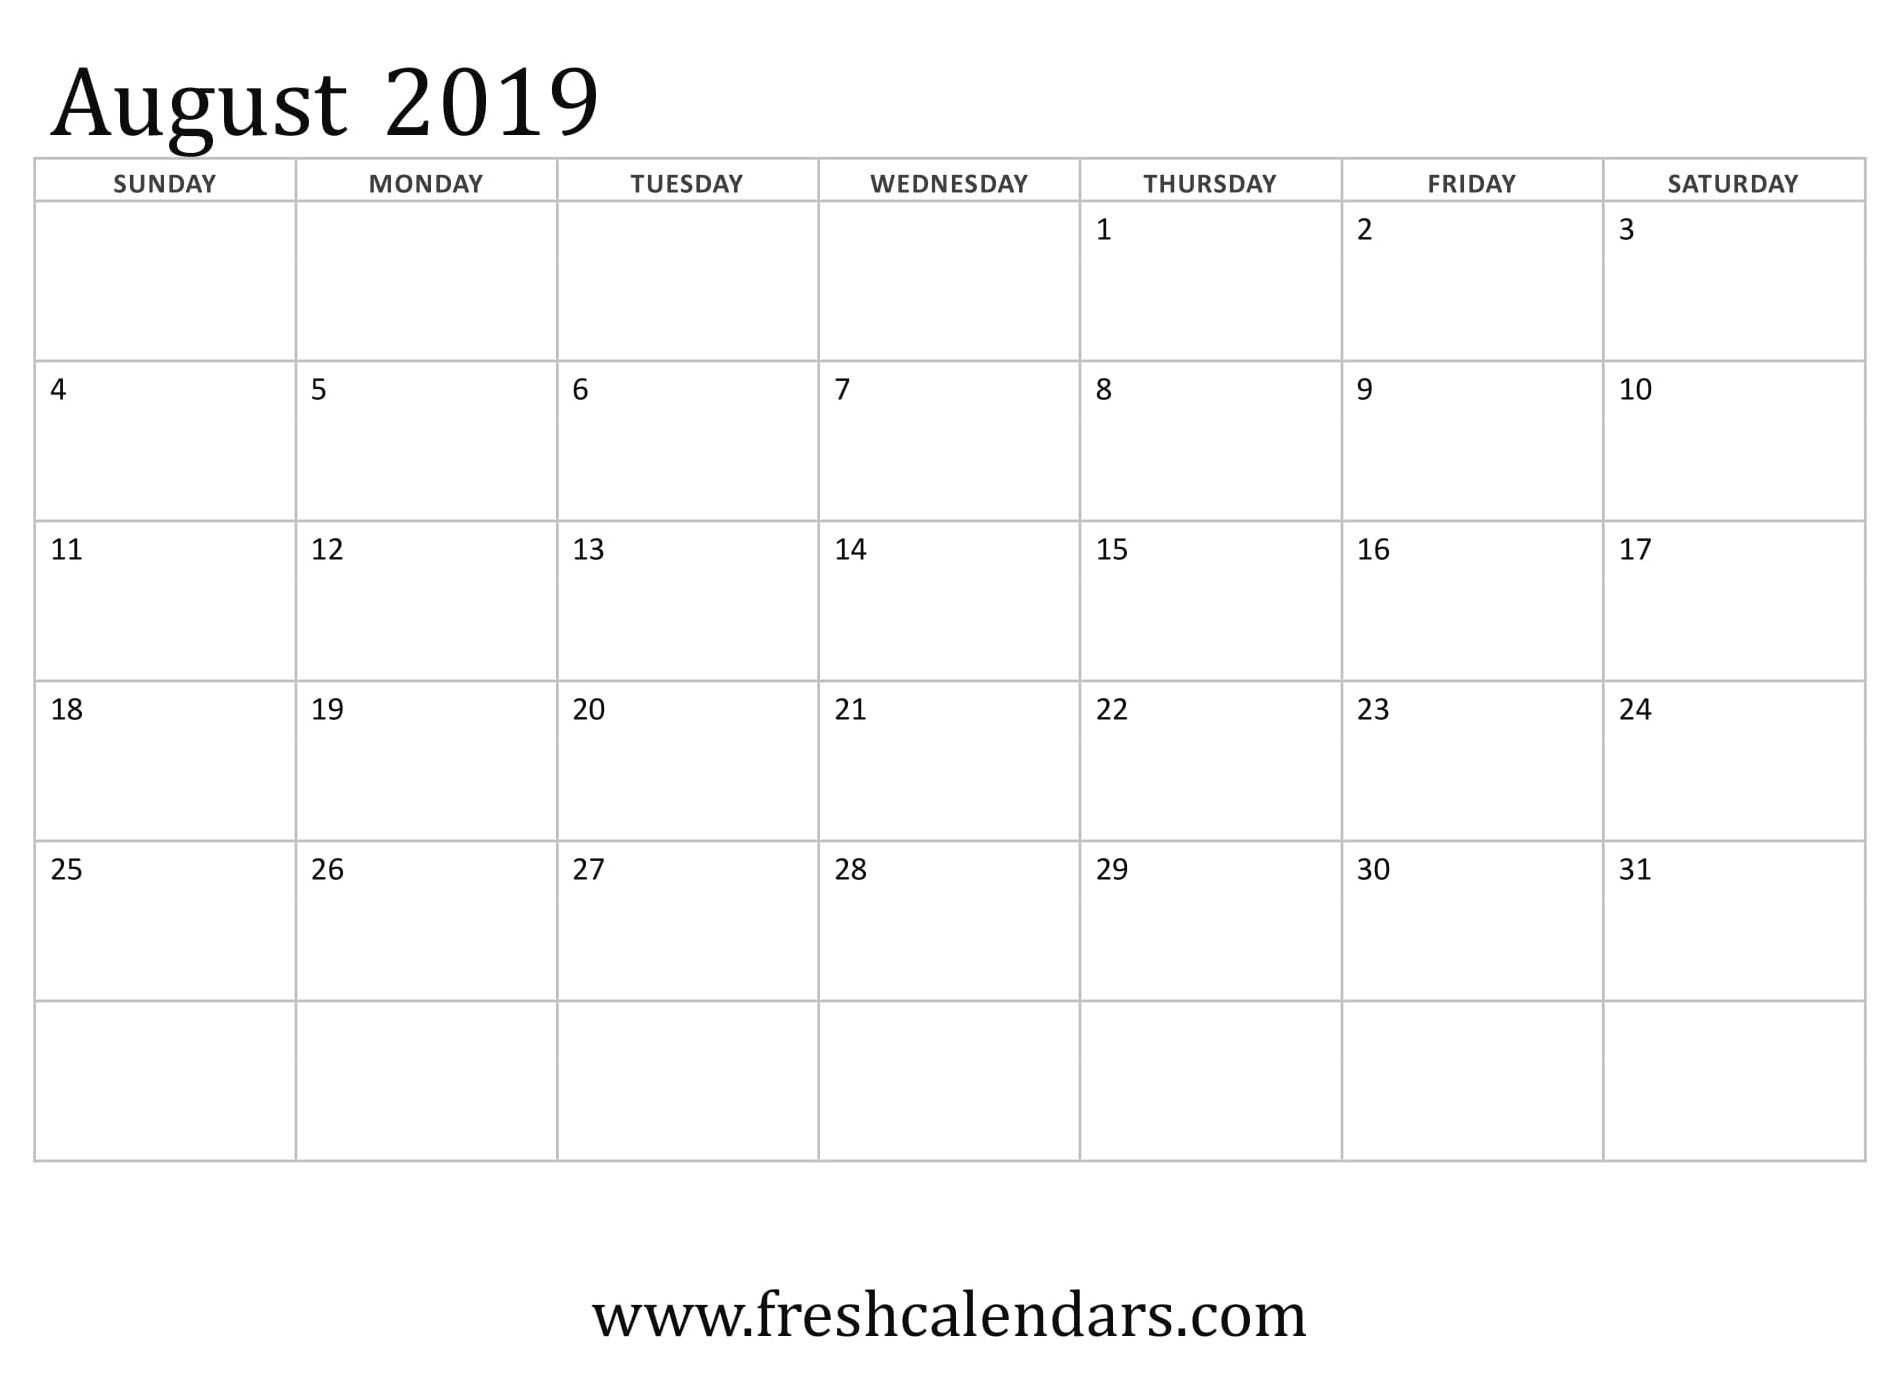 August 2019 Calendar Template To Type In | Calendar Format Example regarding August Calendar Template To Type In